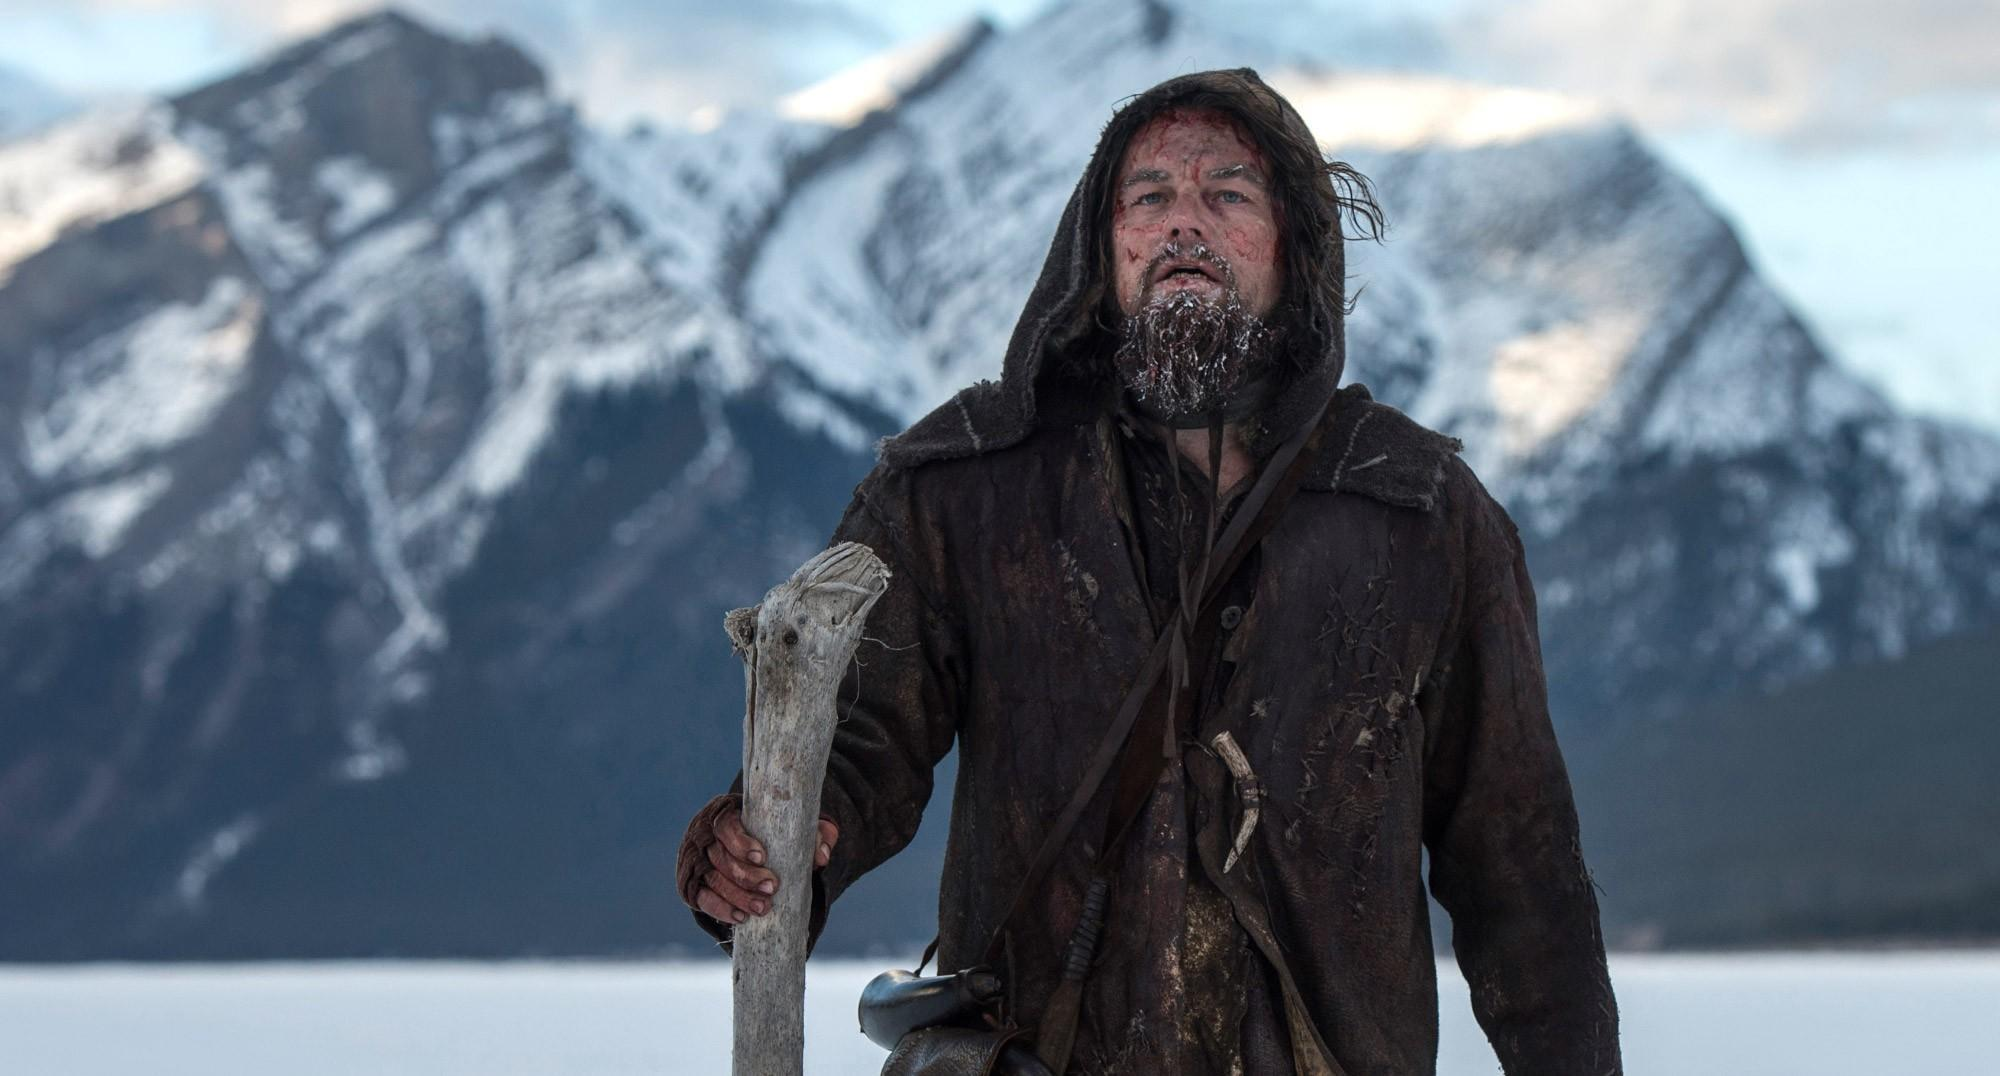 Leonardo DiCaprio is making a documentary about being a Revenant-style frontiersman | The Independent